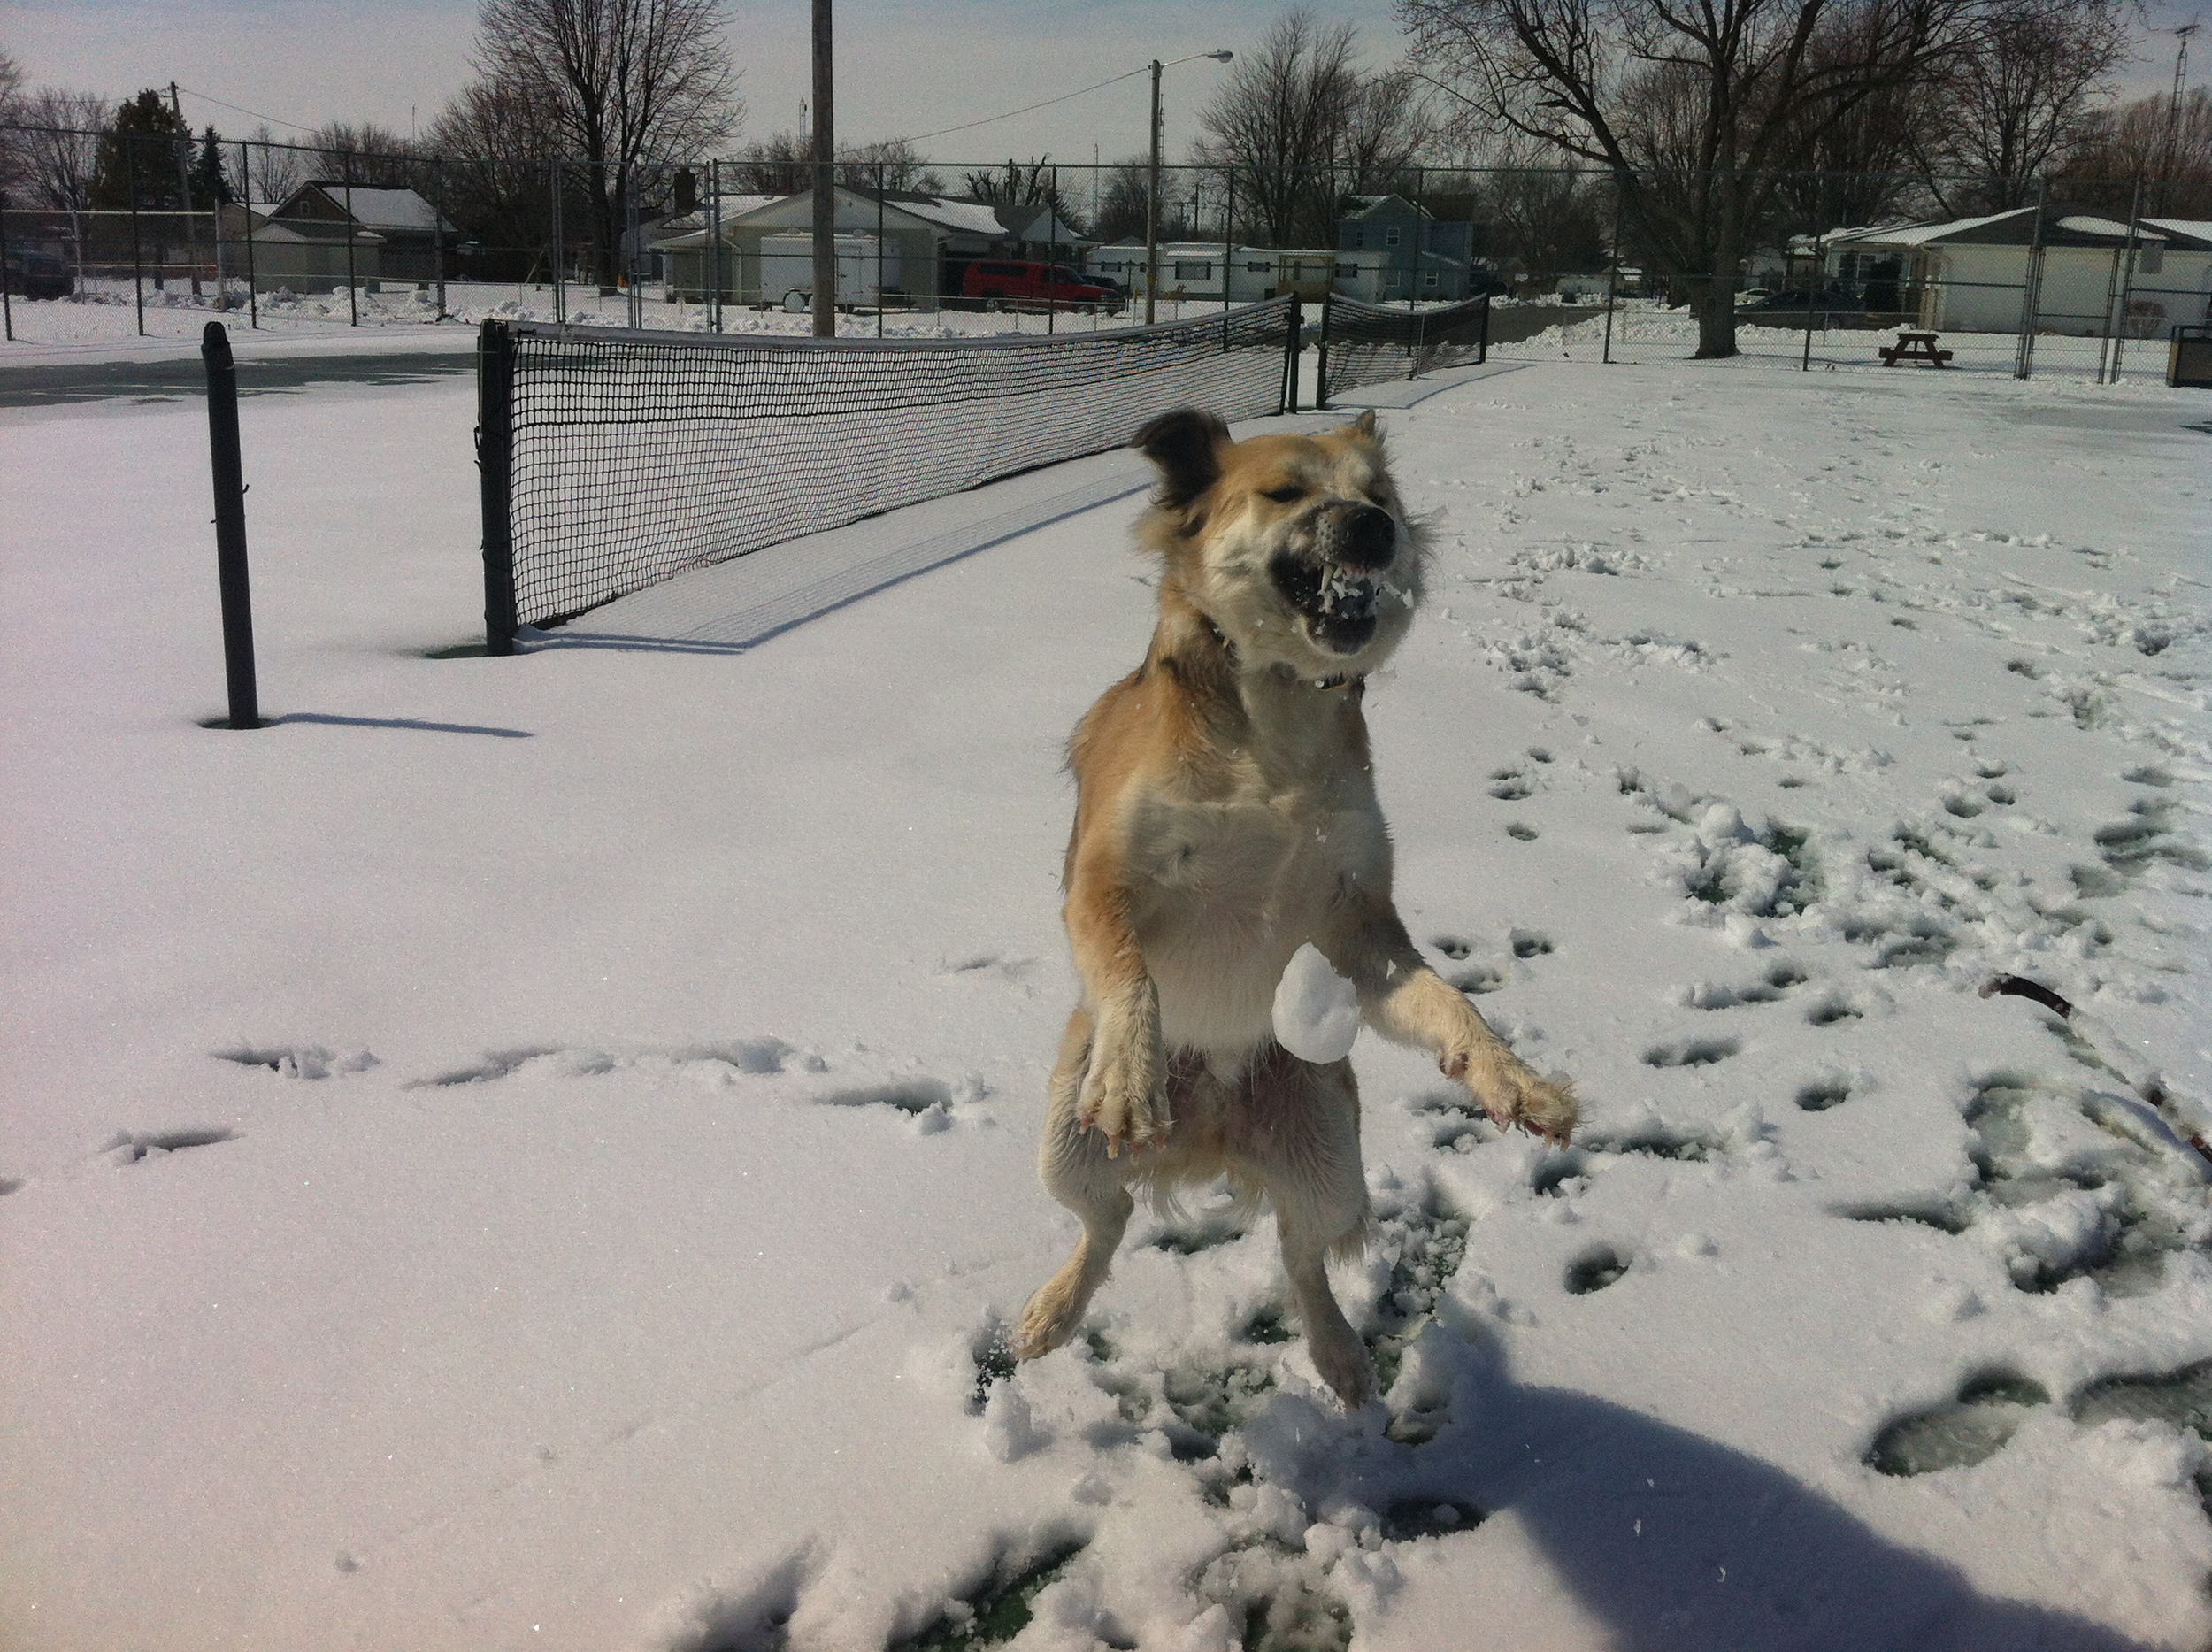 killing time, throwing snowballs to gussie.